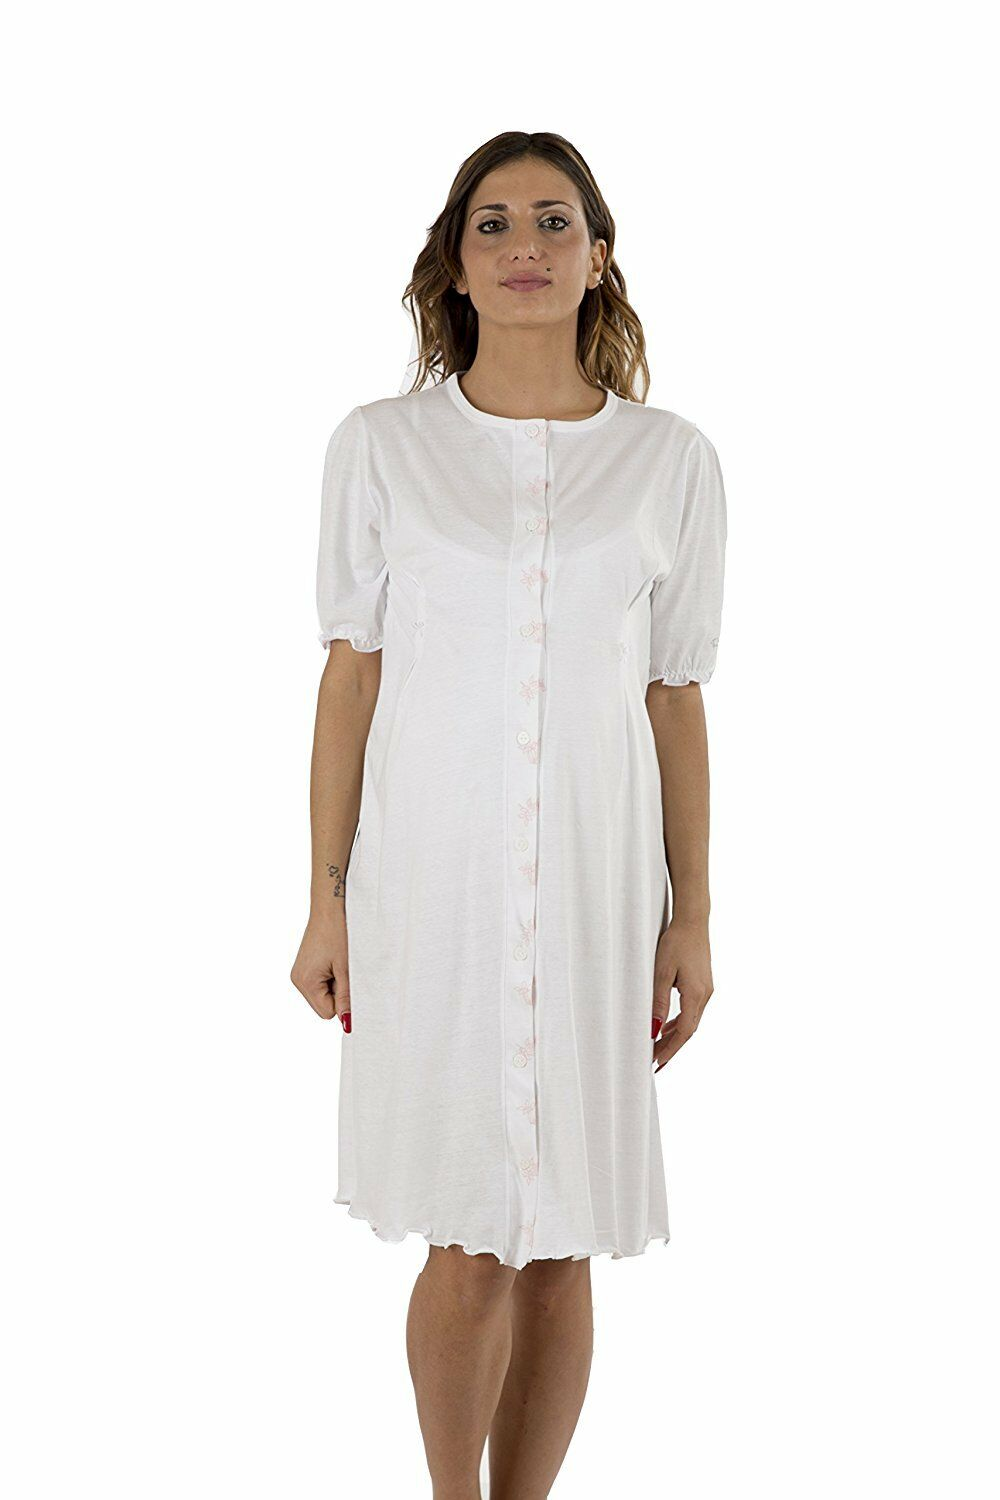 Premamy - Womens Maternity Hospital Gown - Colour  White - Size  S